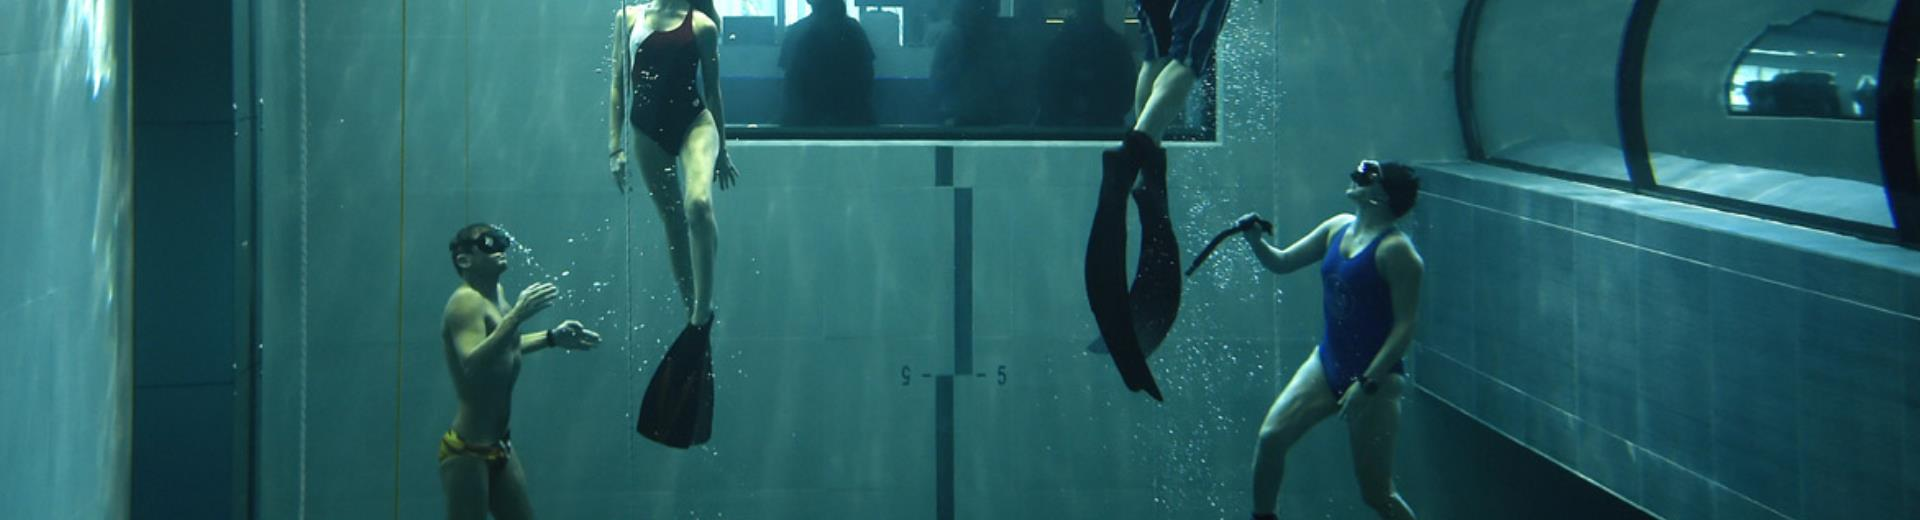 Immerse yourself in Y-40, the world''s deepest pool with BW Plus Hotel Galileo